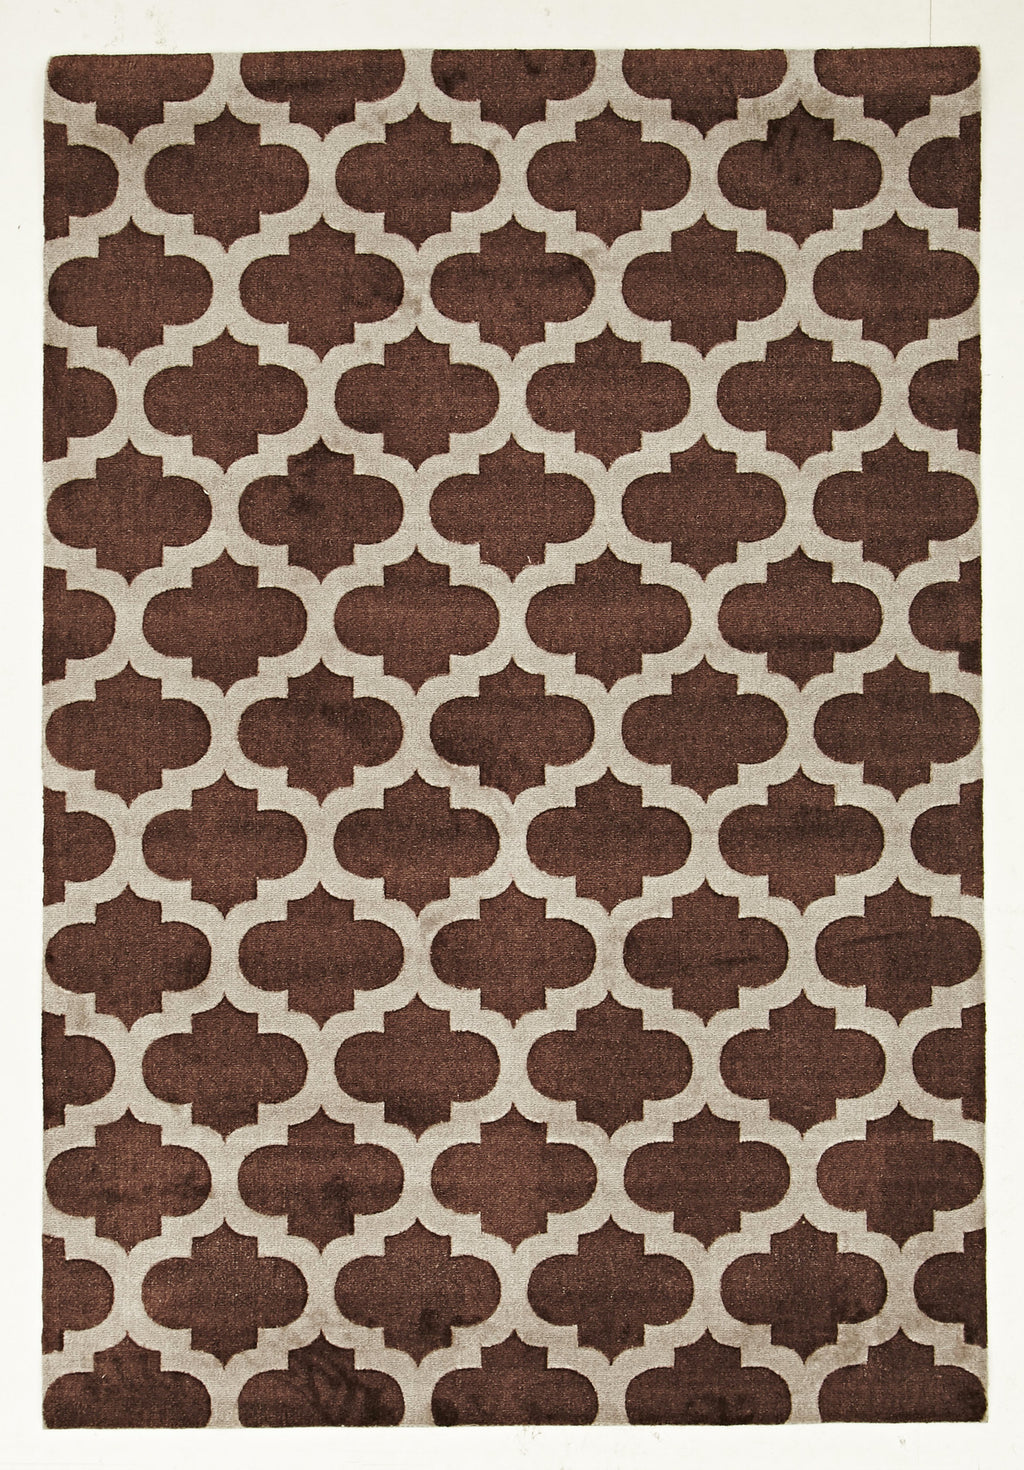 Brighton Trellis Stylish Design Rug Brown